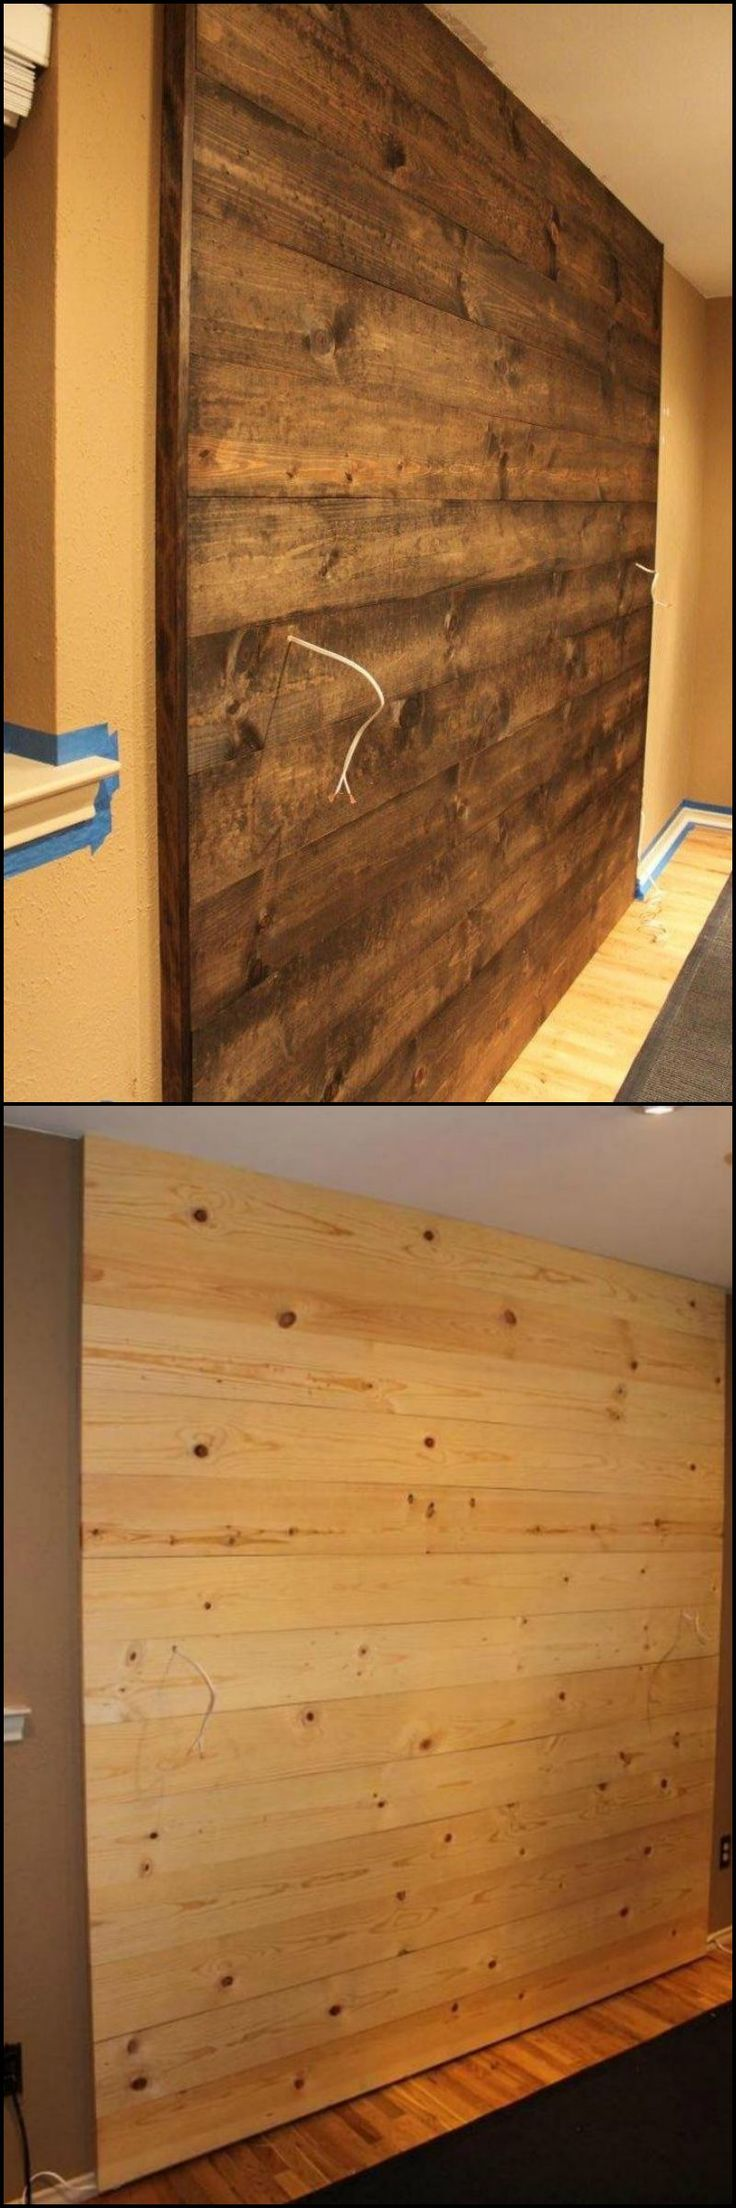 How To Build A Wood Wall Accent http://theownerbuildernetwork.co/khvj Whether you use it in the bedroom, bathroom or living areas, this accent wall project will give your home a slightly rustic feel.